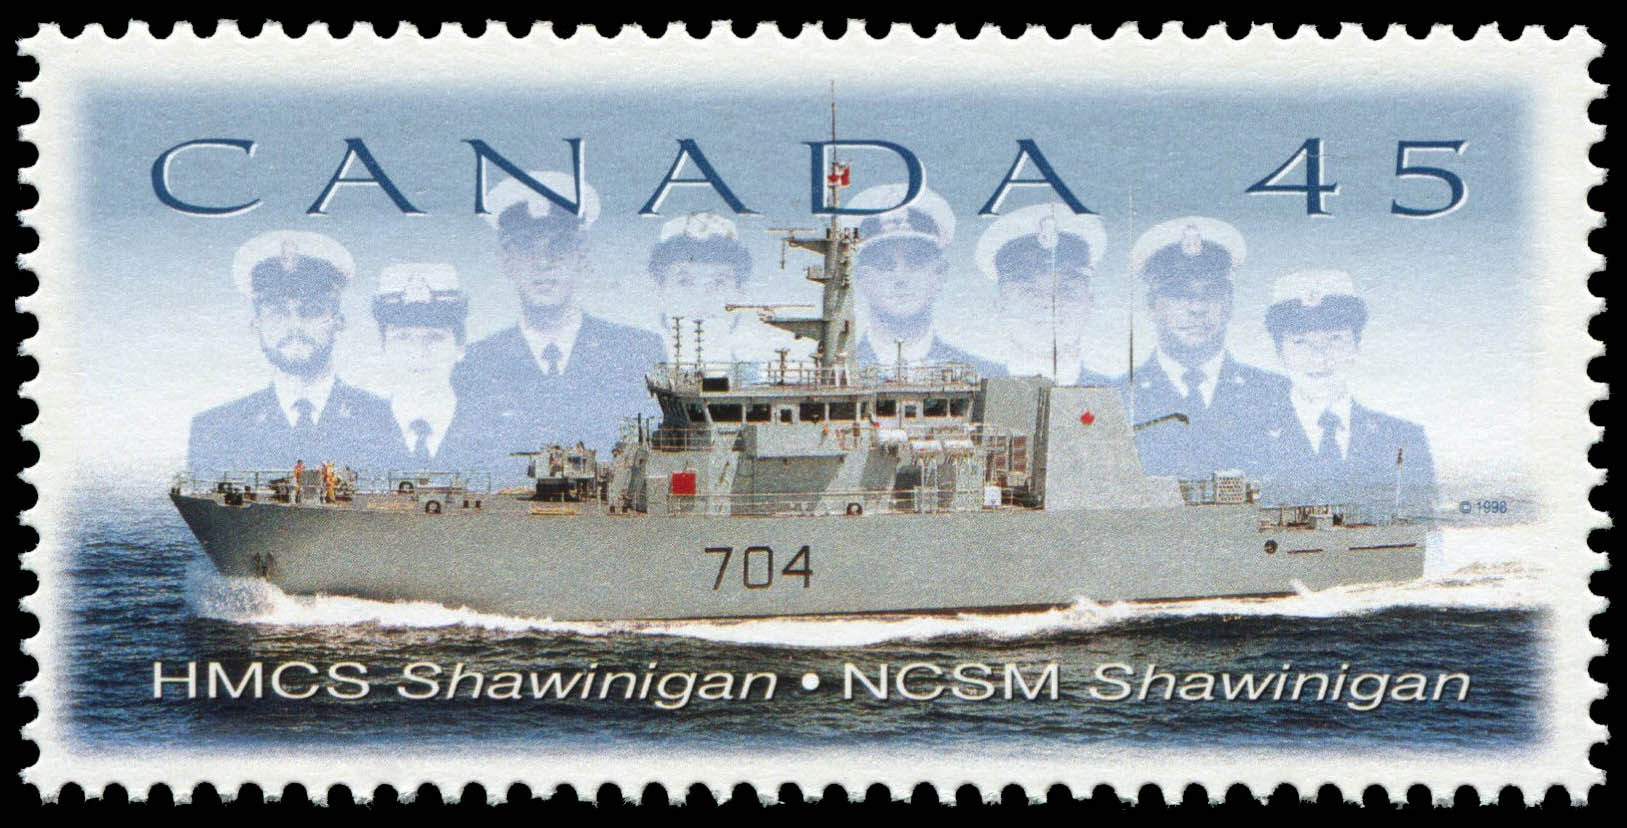 HMCS Shawinigan - Canadian Corvette Canada Postage Stamp | Naval Vessels